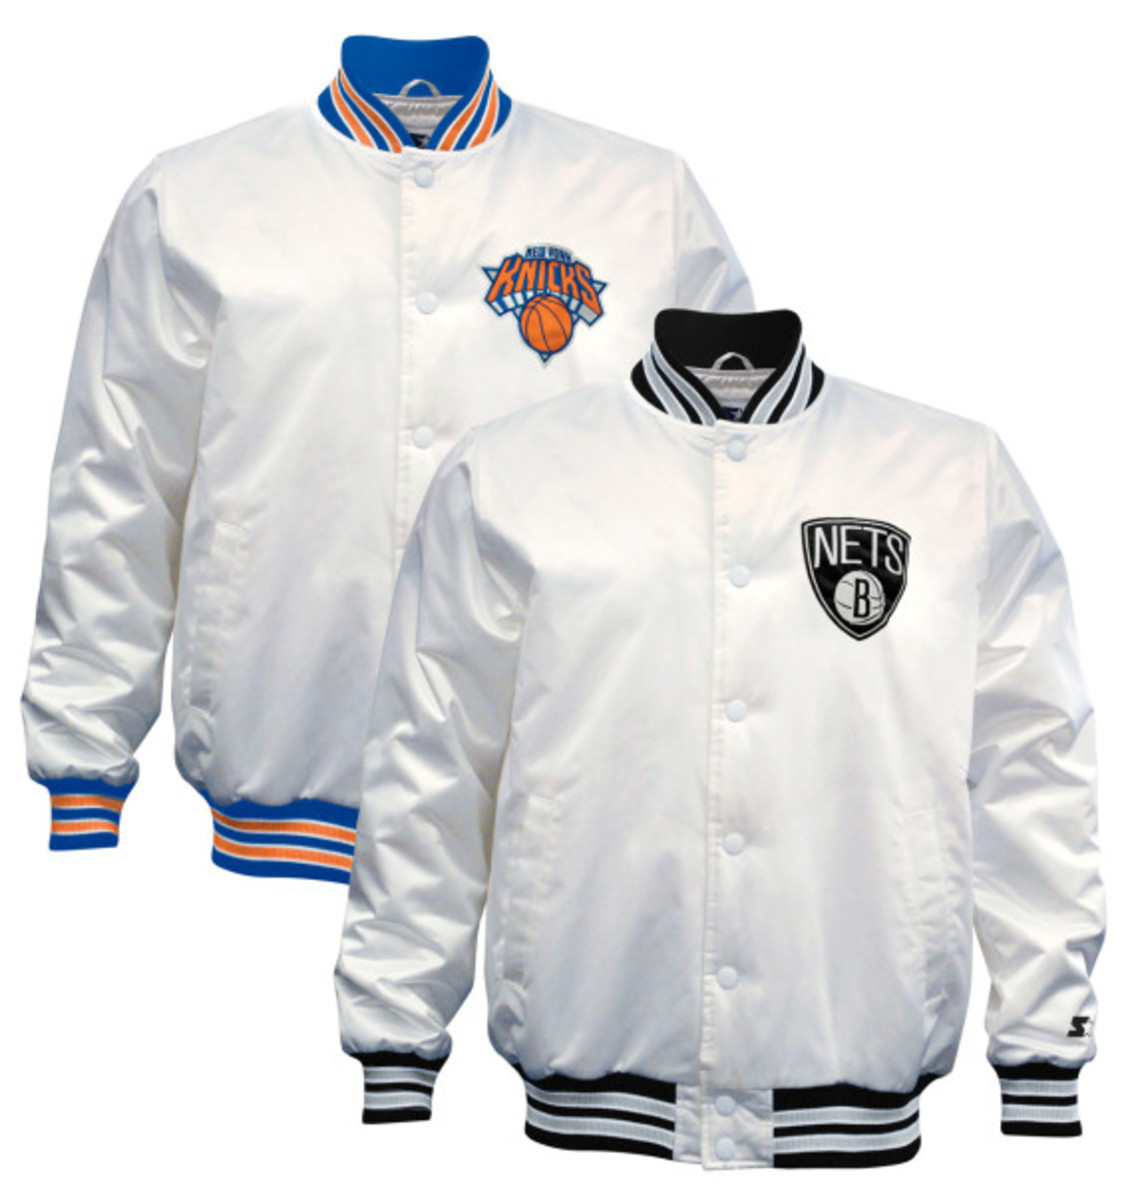 Starter – Apr 12, 2016 & Brooklyn Nets Limited Edition Satin Jacket in Christmas White - 0